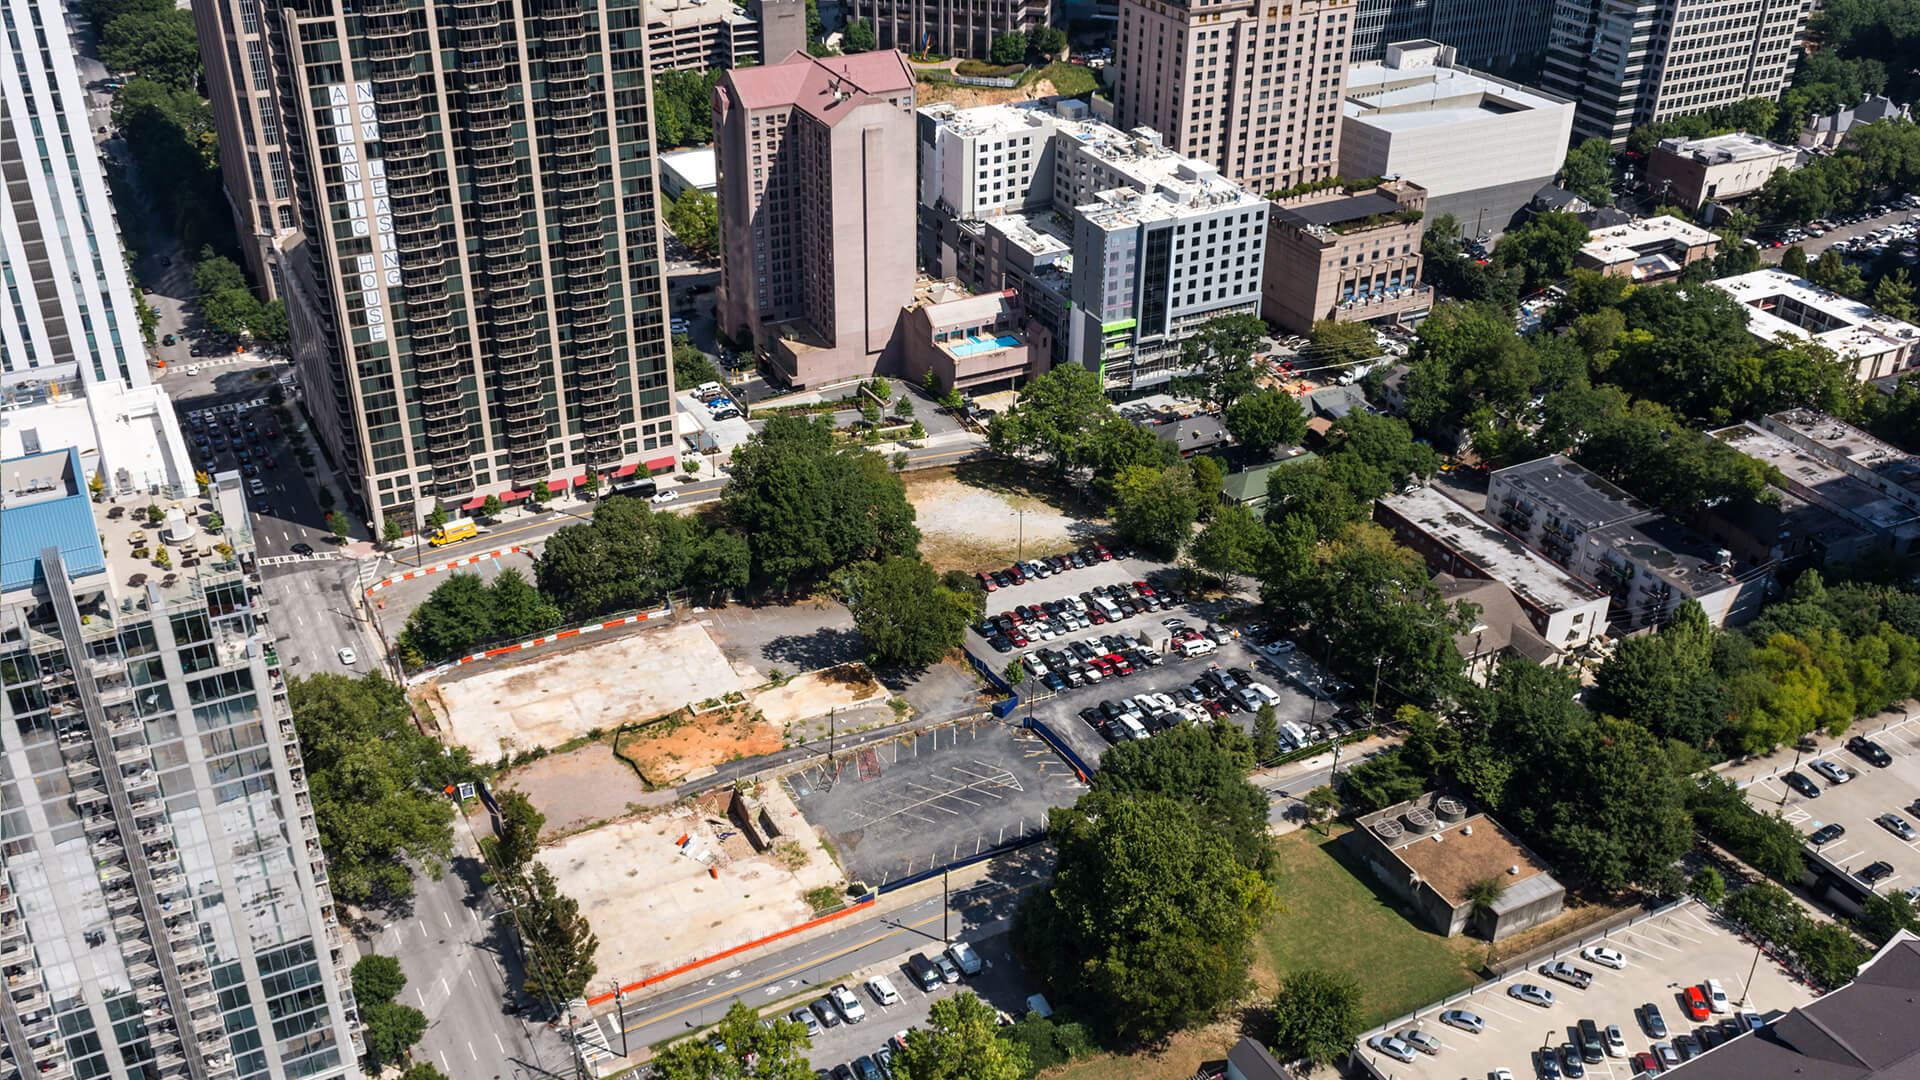 Entire Midtown block bulldozed for massive mixed-use project